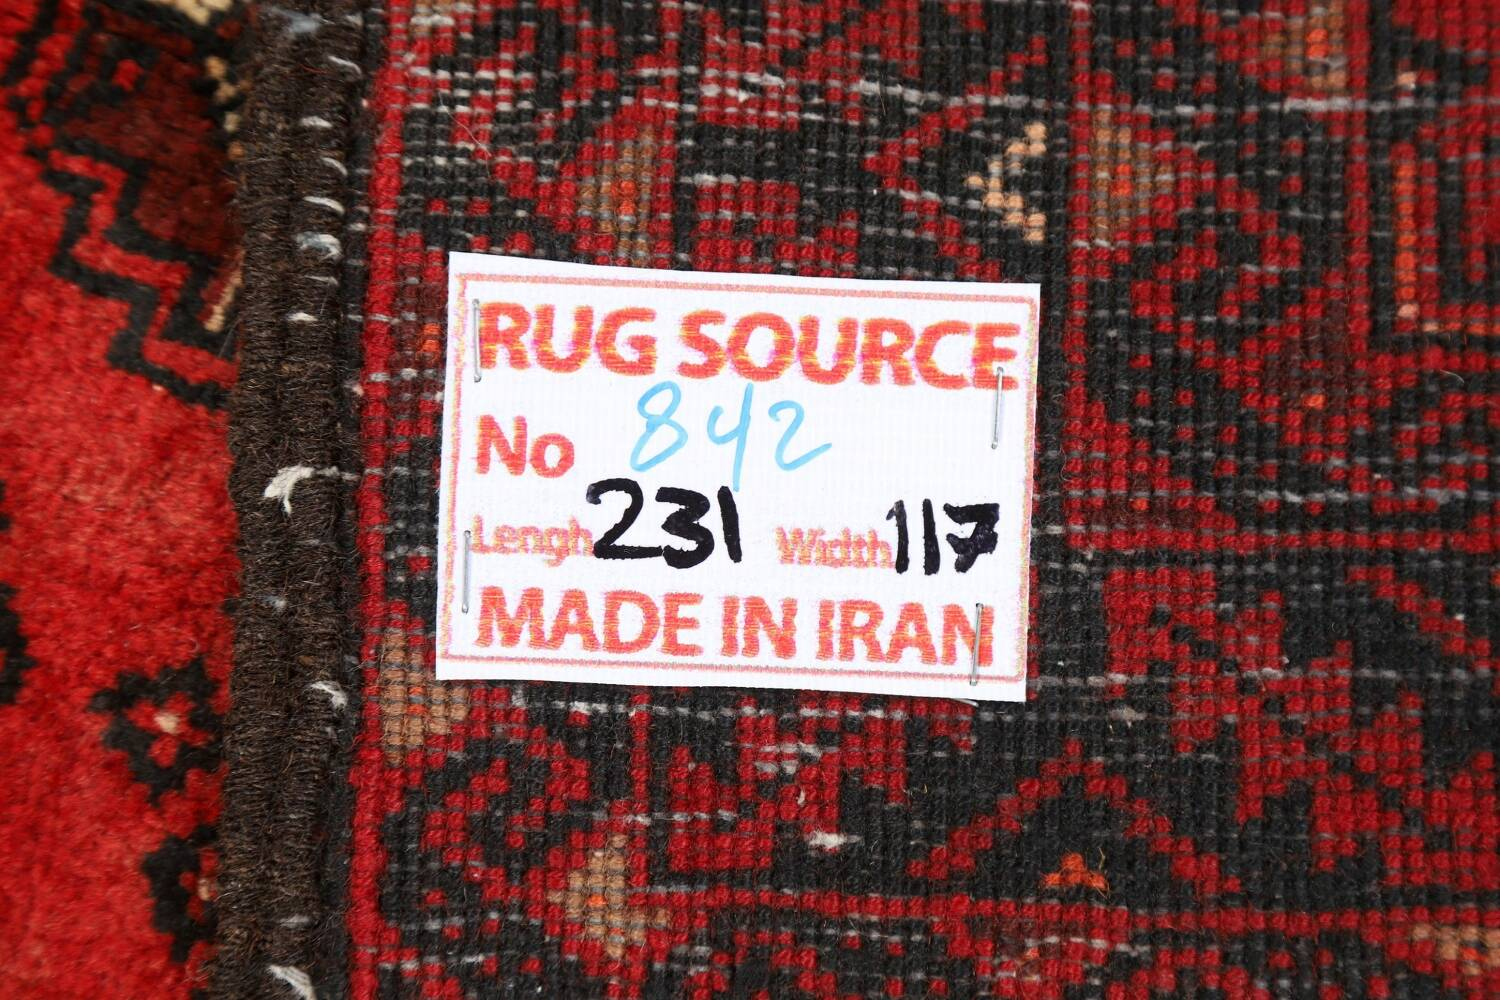 All-Over Red Geometric Balouch Persian Area Rug 4x7 image 22